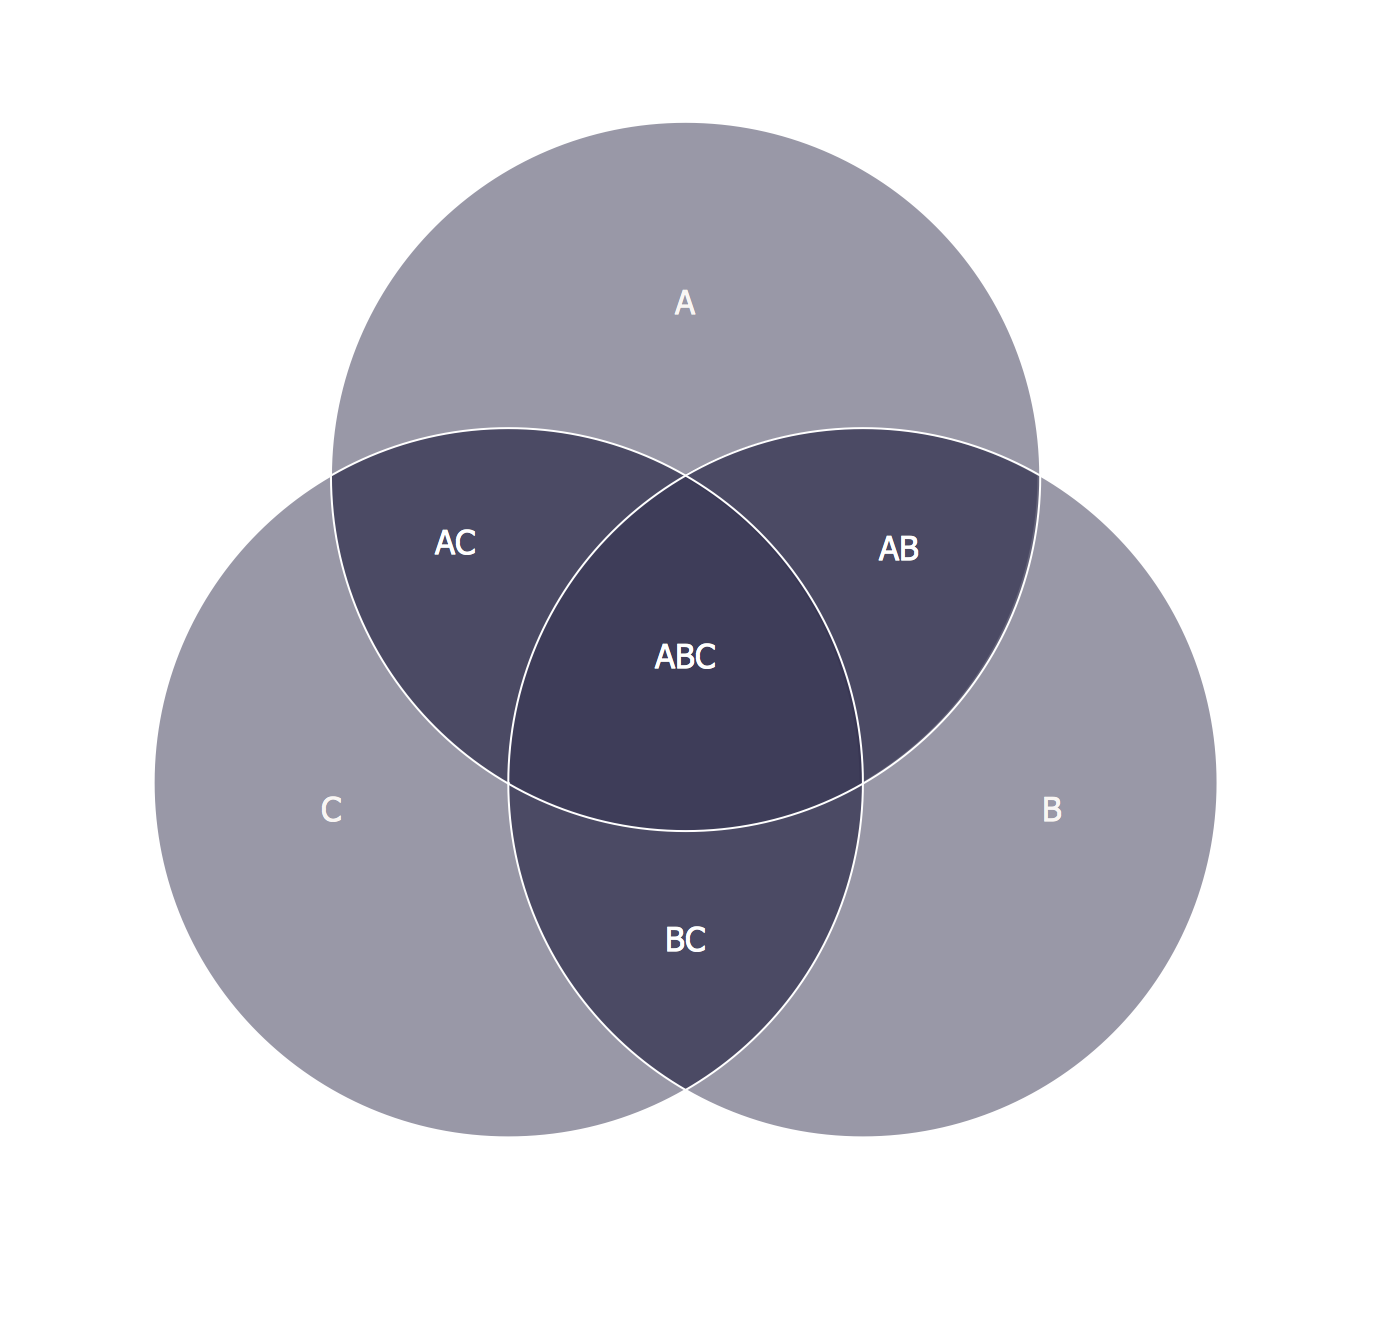 3 circles venn diagram 3 circle venn diagram venn diagram template venn's construction on logic venn diagram